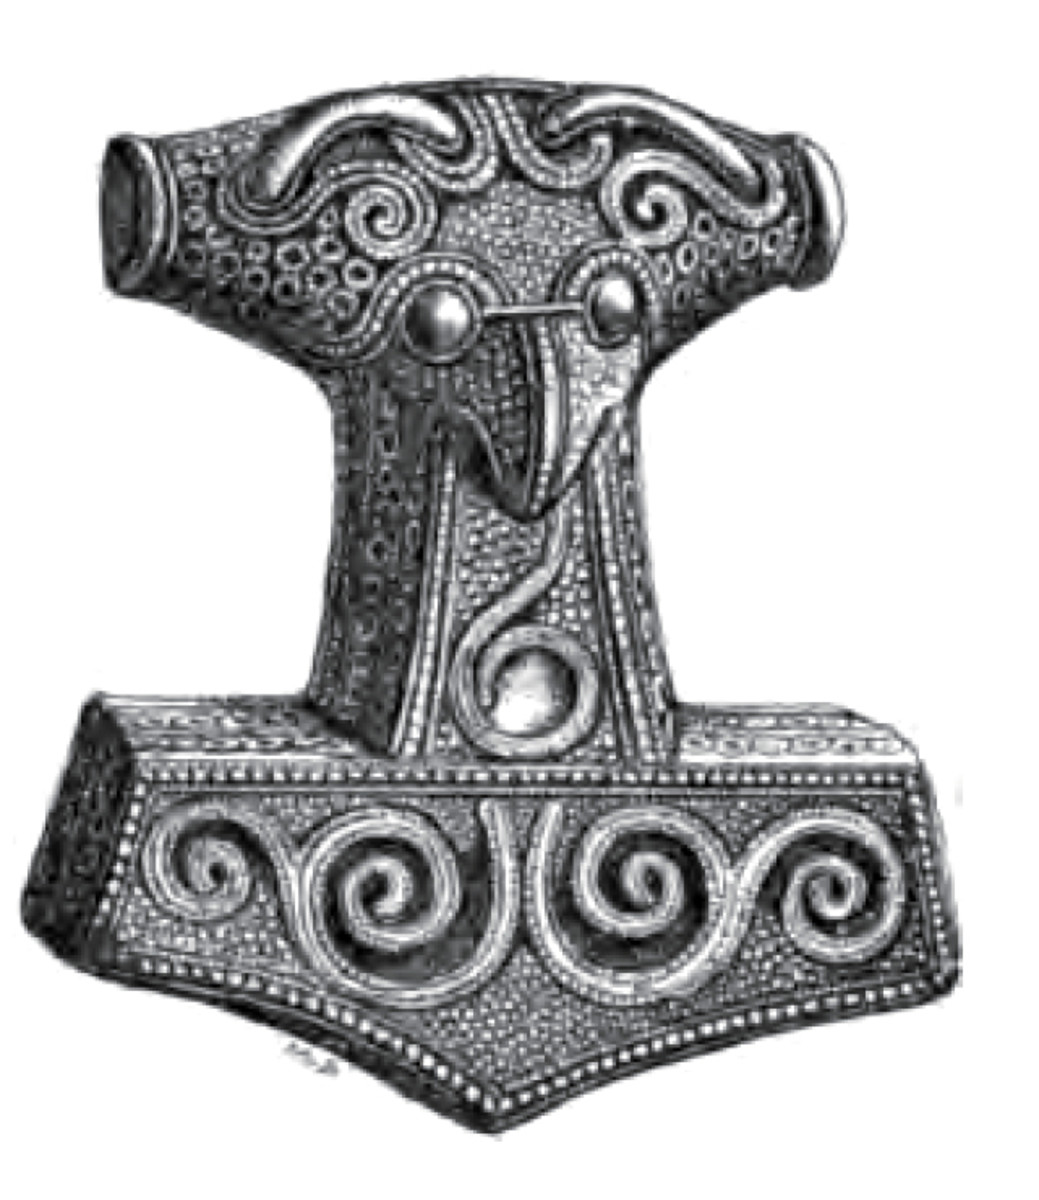 Thor's Hammer - Mjoellnir - from Skaane, present day south-western Sweden. formerly Danish territory